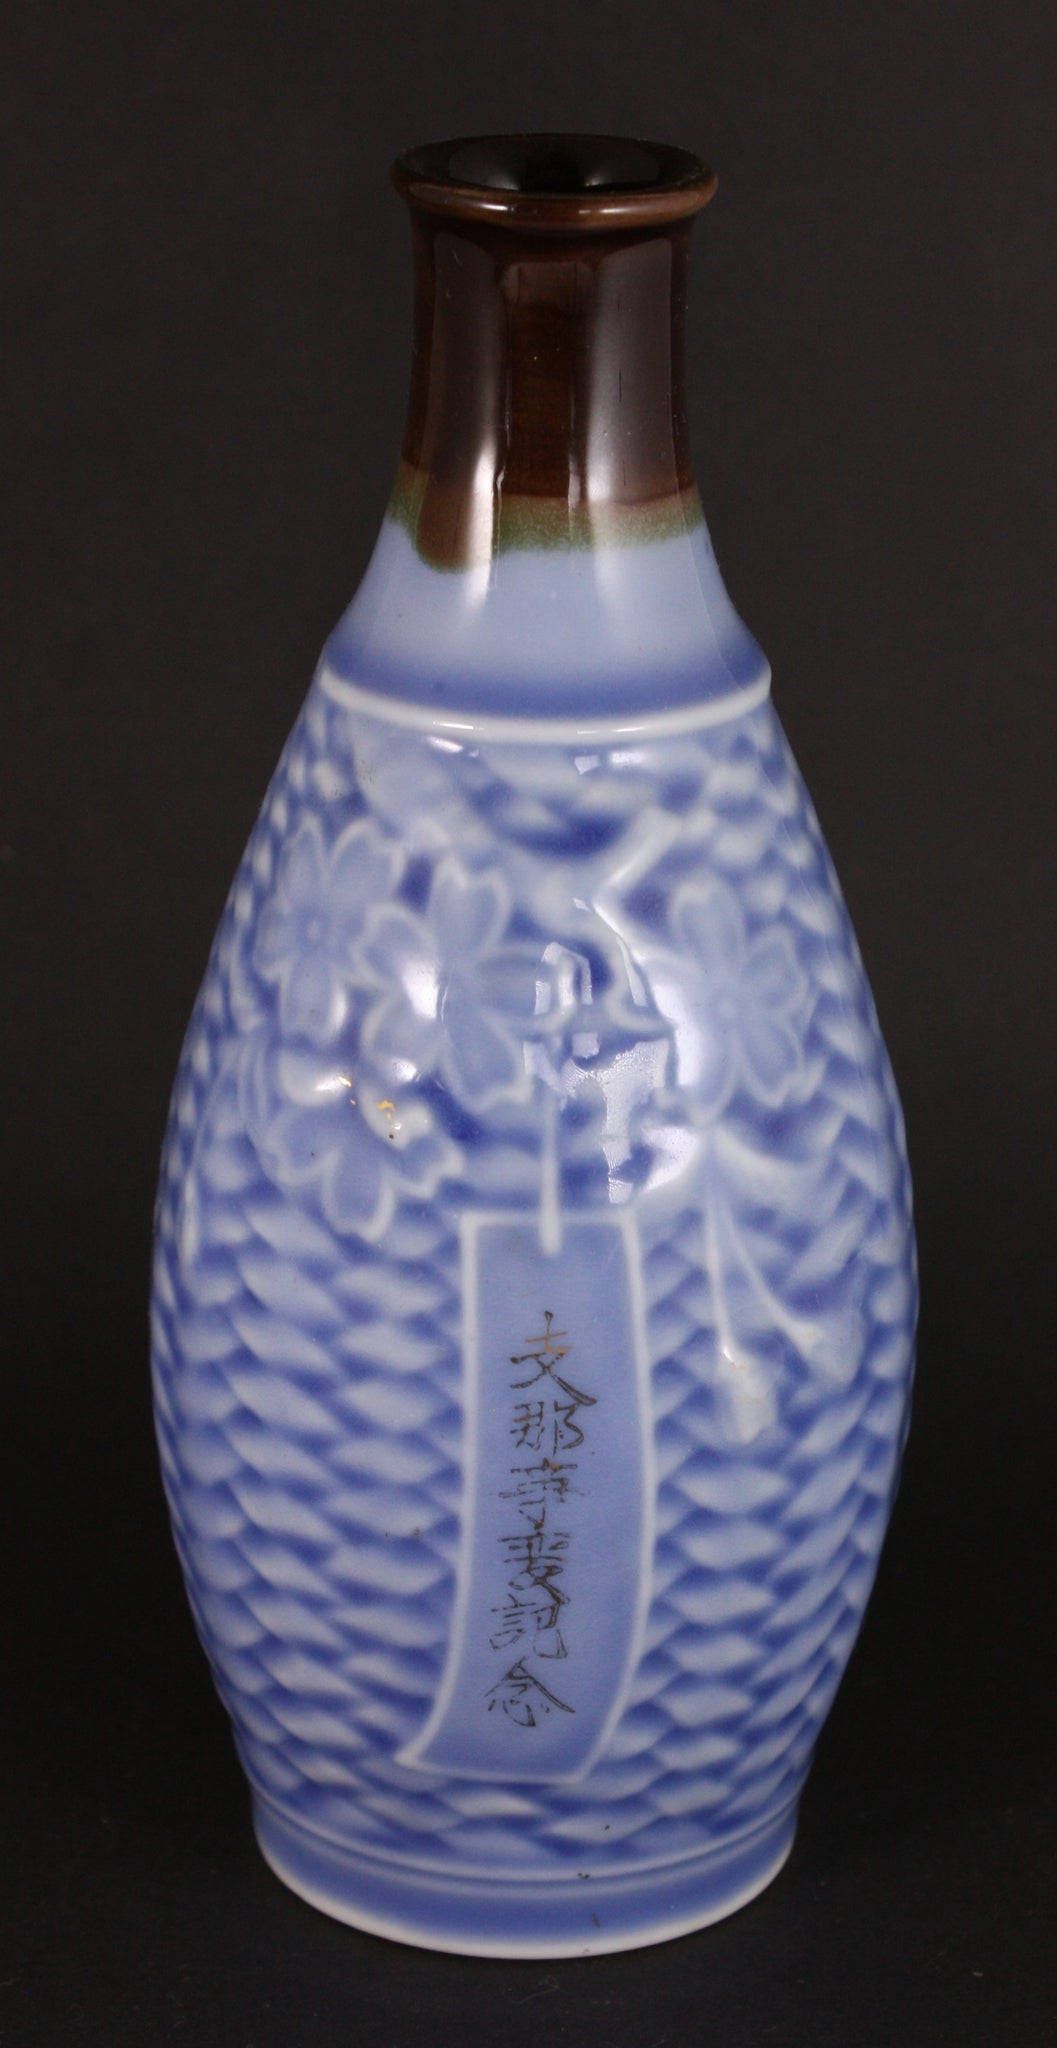 Antique Japanese Military Chinese City Gate Army Sake Bottle